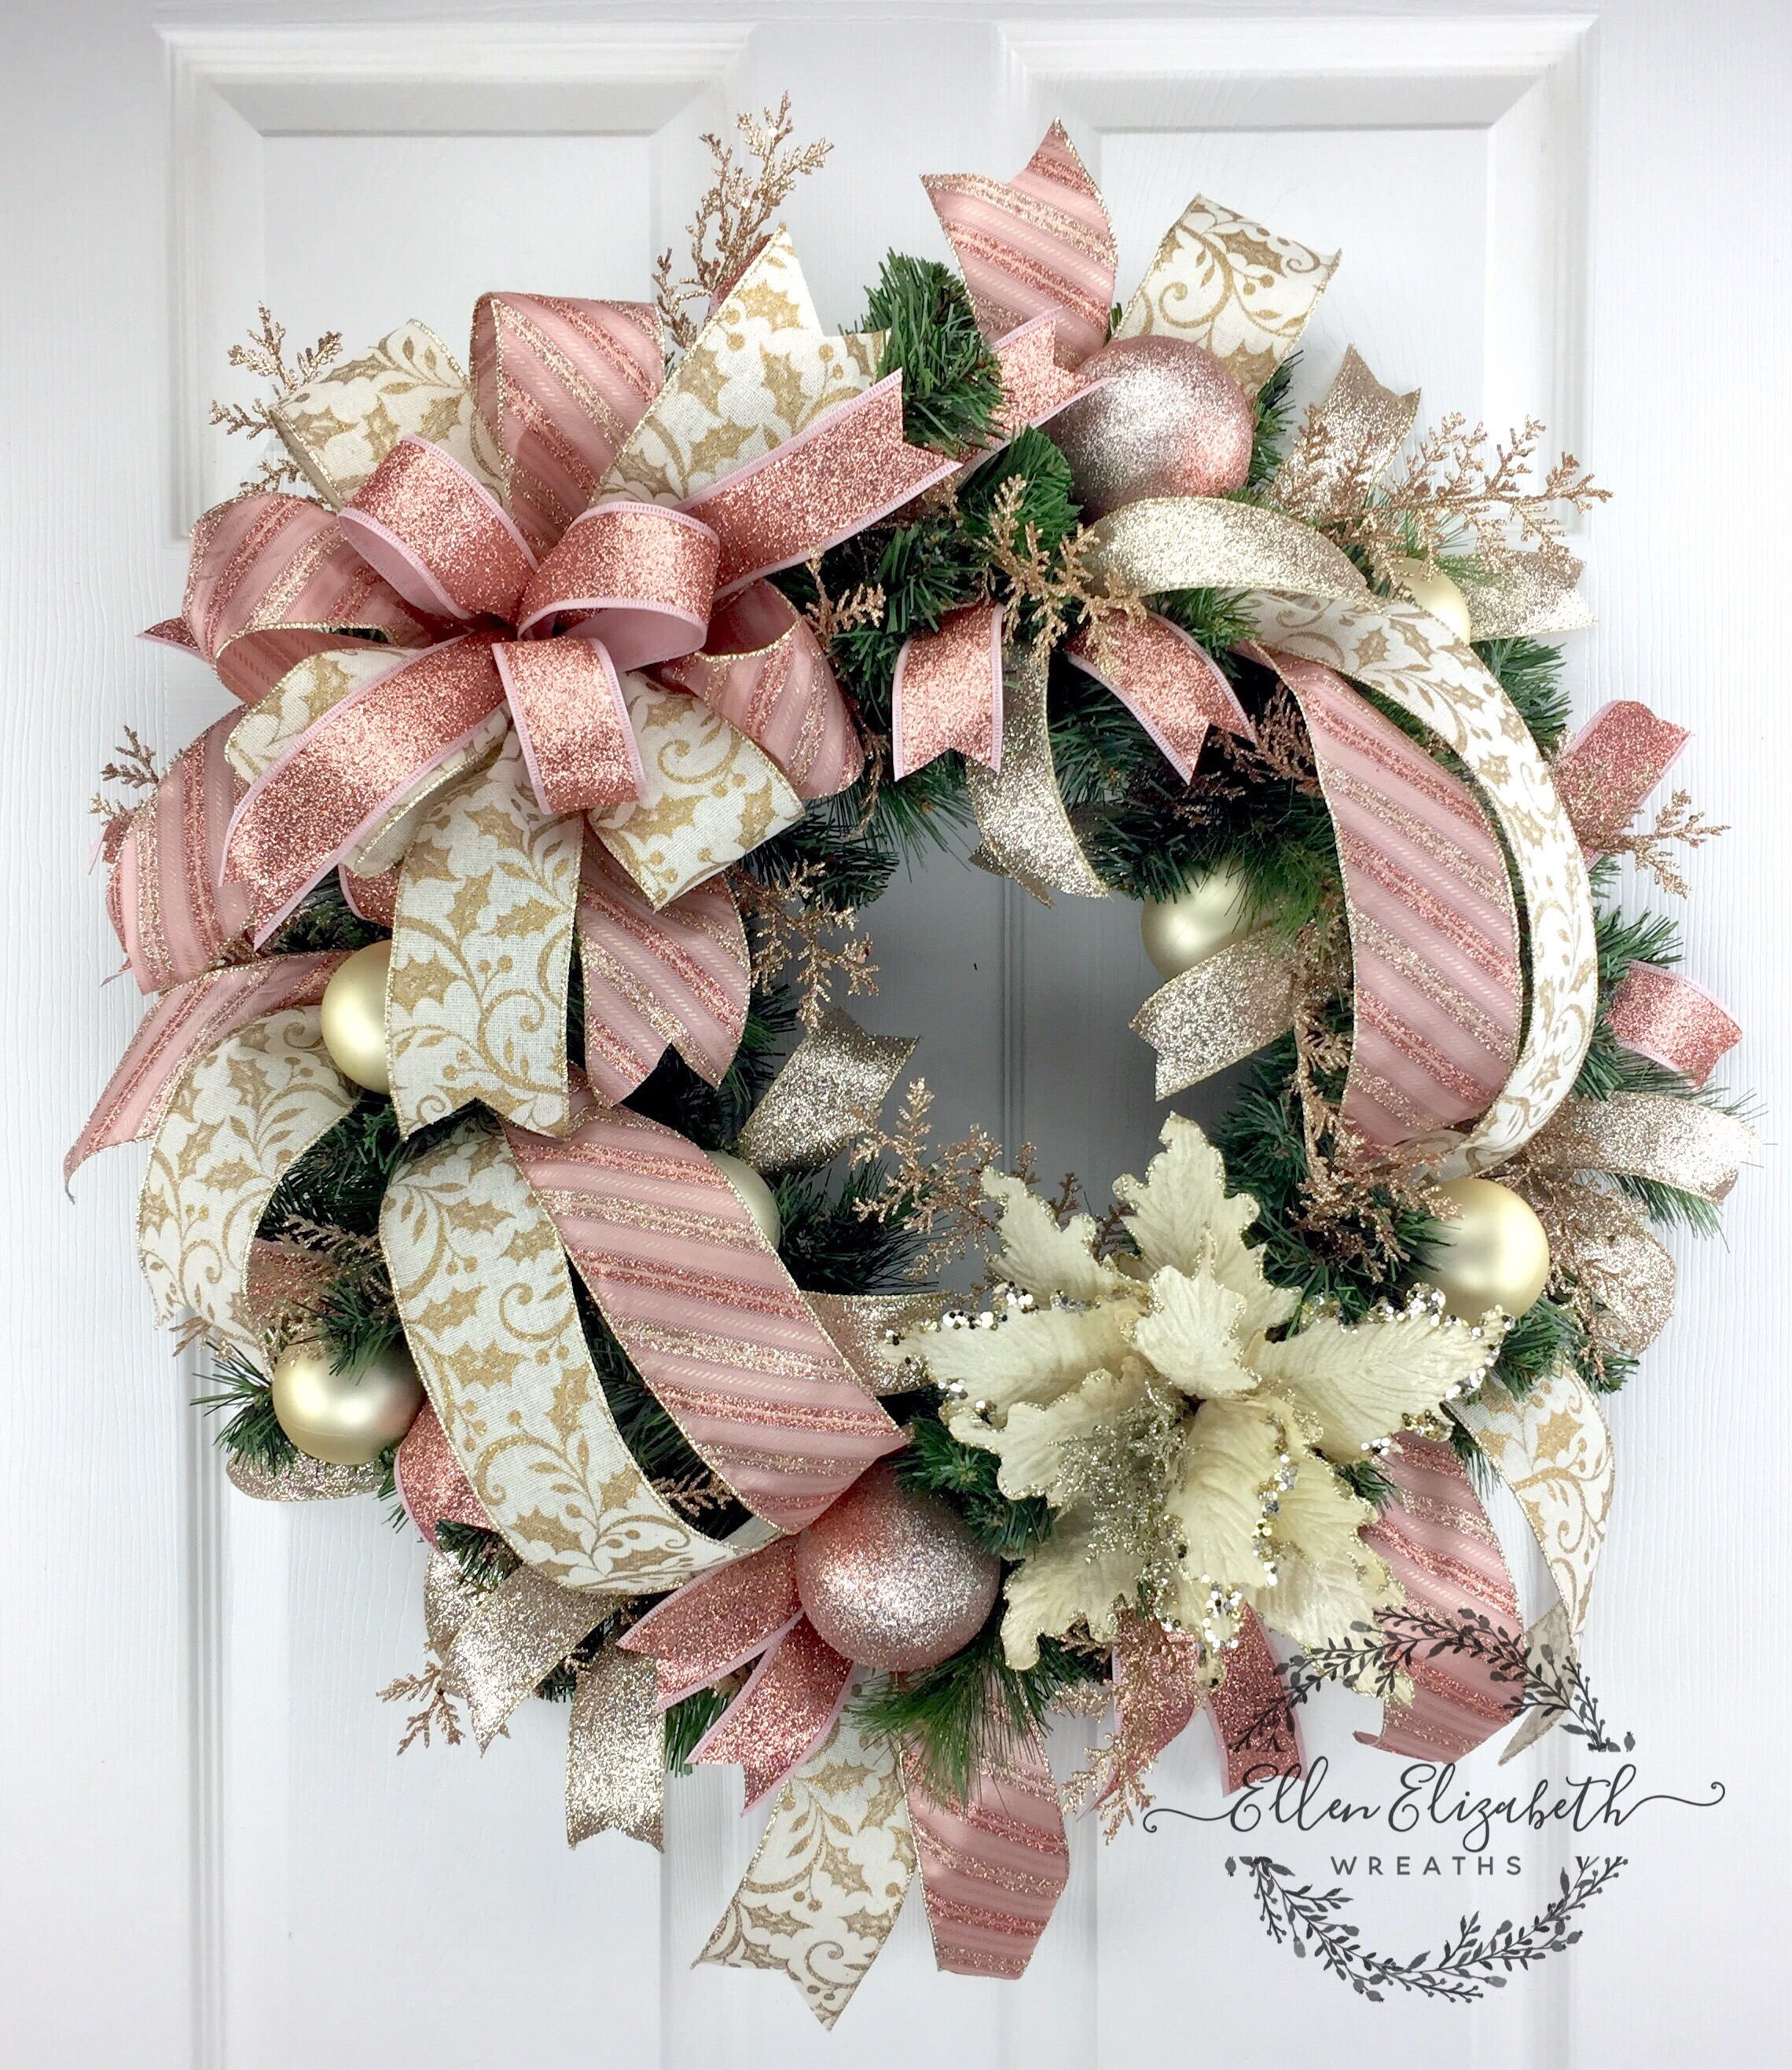 christmas wreaths for front door elegant christmas wreaths poinsettia wreaths christmas door wreath rose gold wreath trending wreath by - Elegant Christmas Wreaths